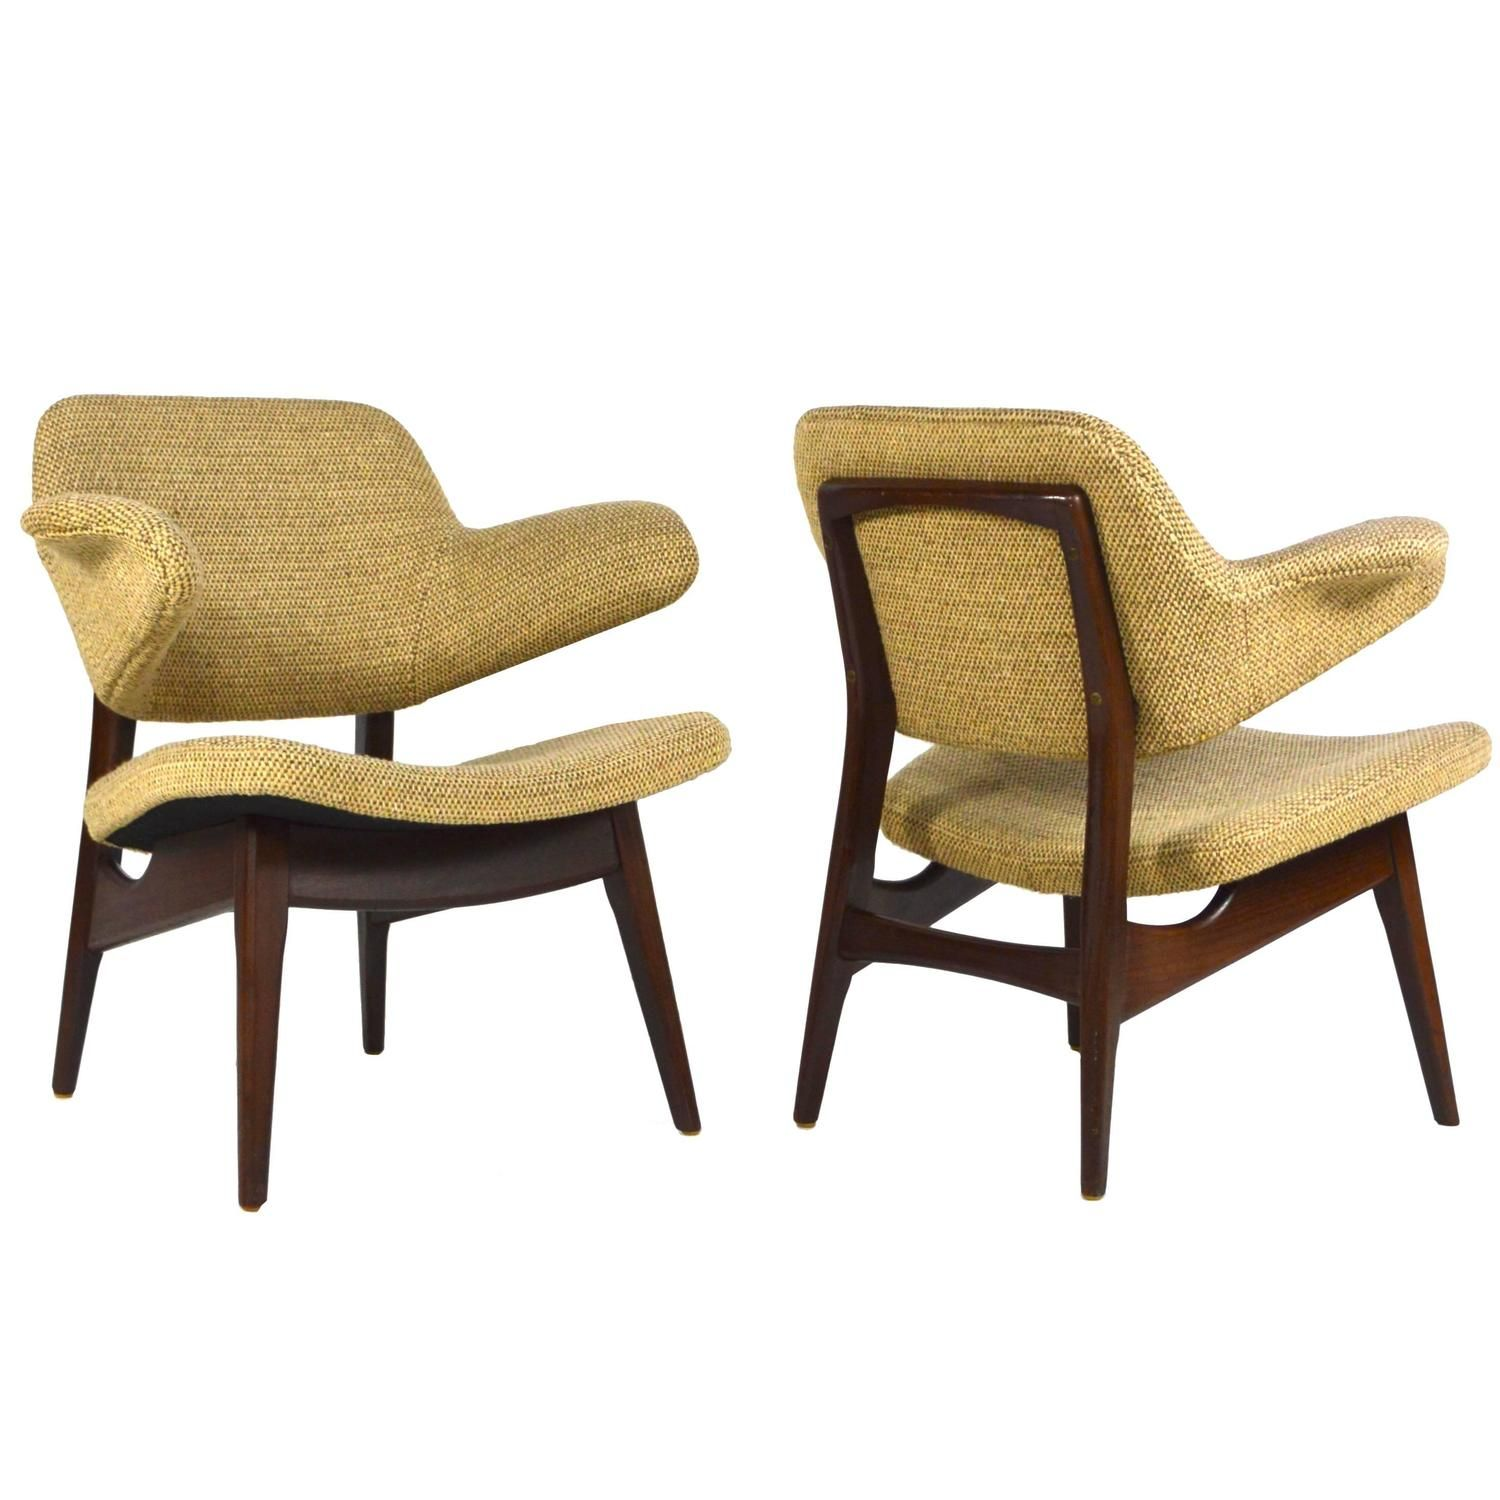 Sold Colorado Usa Pair Of Winged Lounge Chairs By Louis Van Teeffelen For Webe Netherlands 1950 60 S S1561 Meubels Stoelen 1950 S